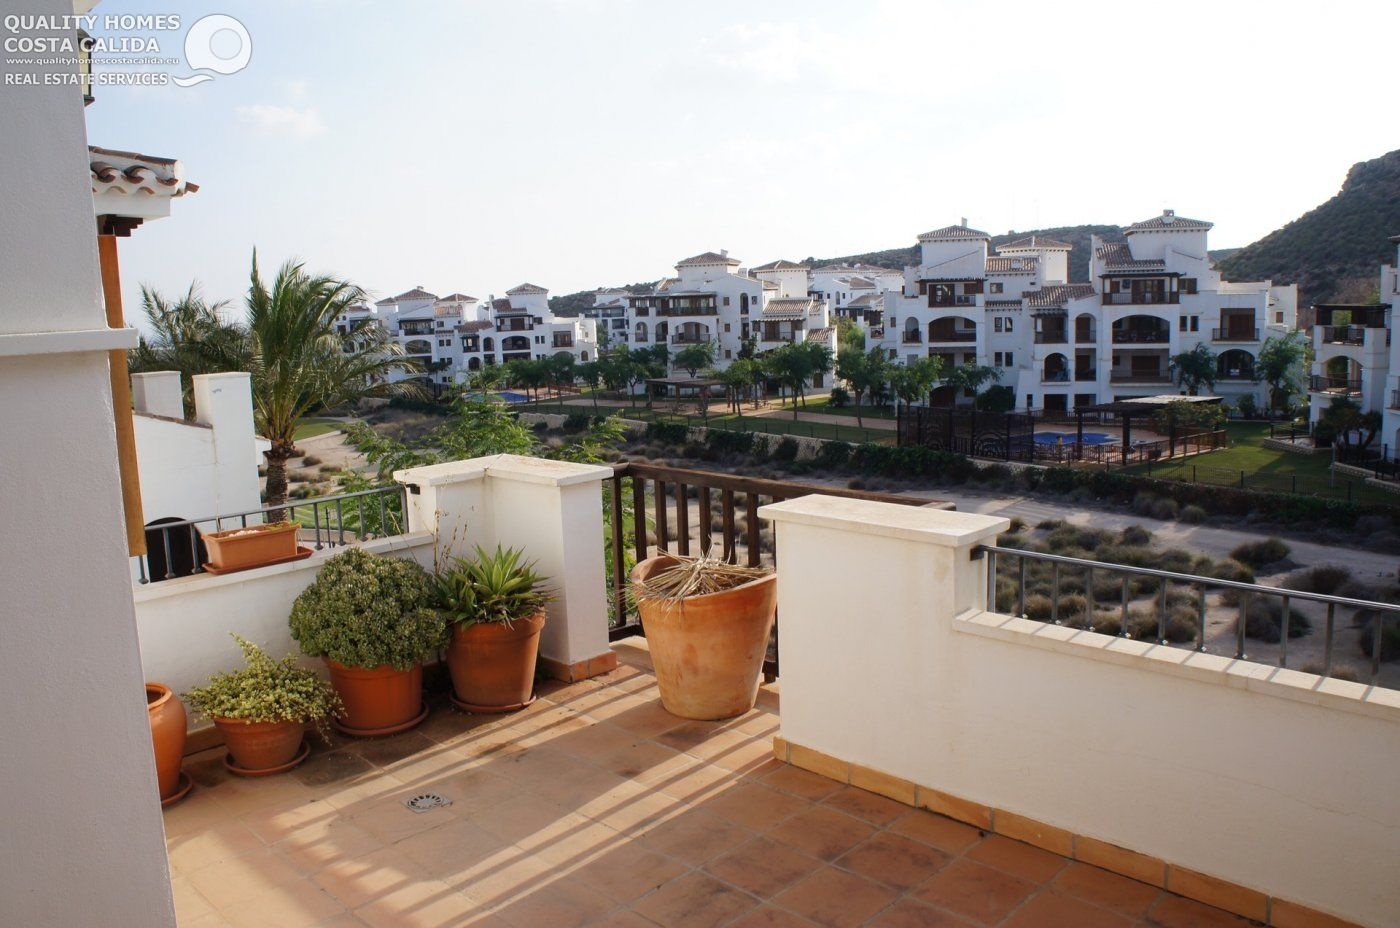 Apartment ref 3265-02775 for sale in El Valle Golf Resort Spain - Quality Homes Costa Cálida